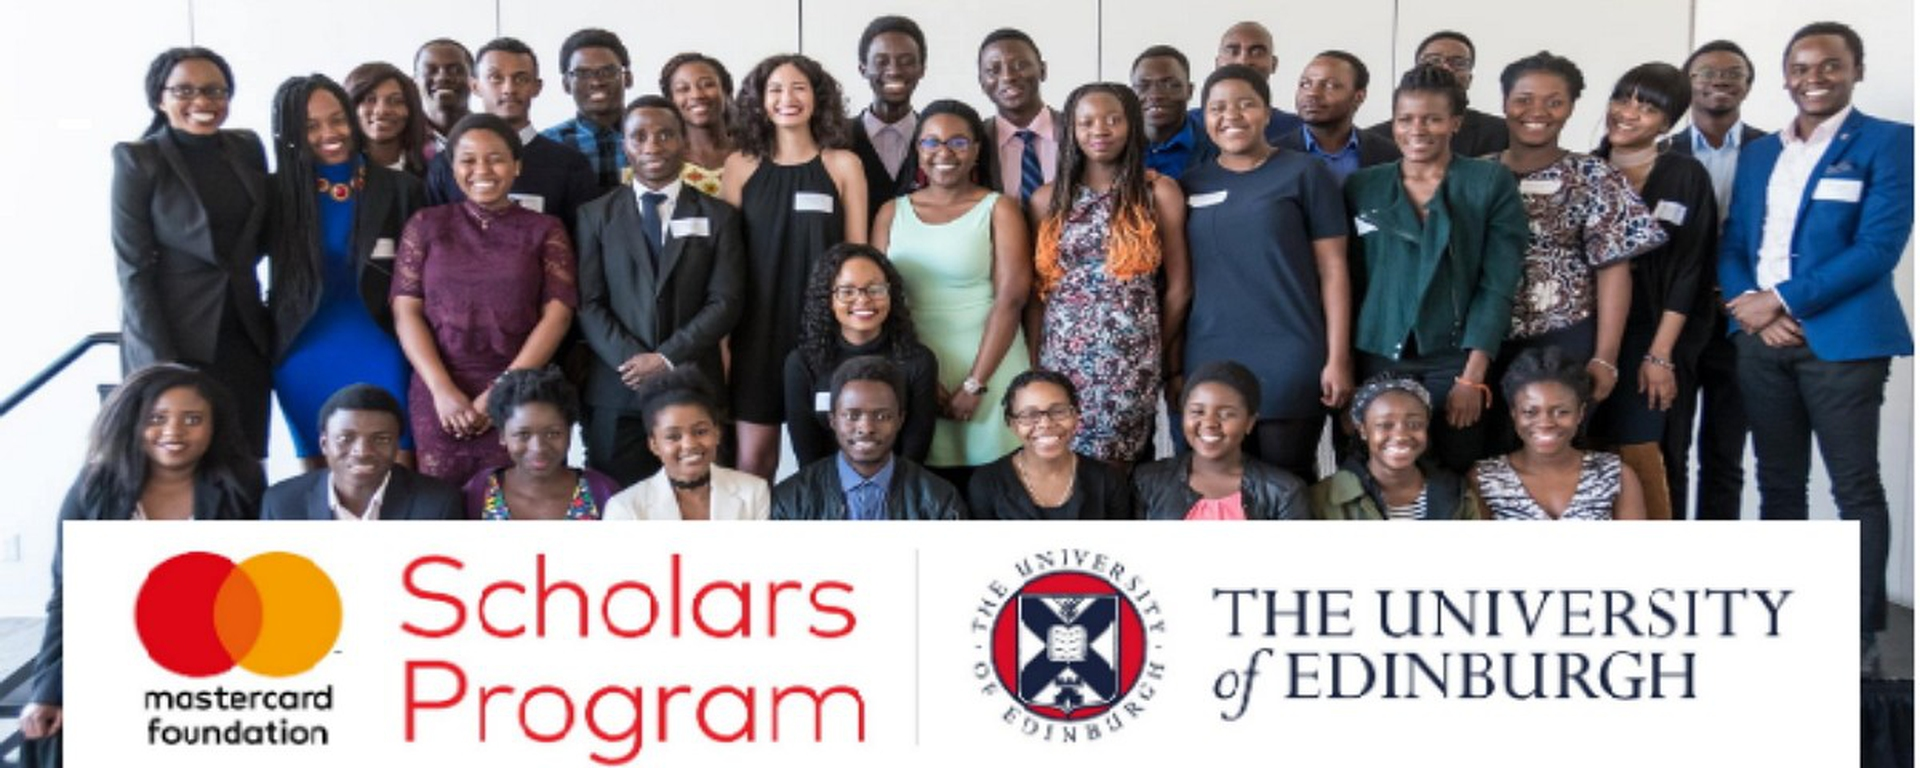 Mastercard Foundation - MasterCard Foundation Scholarship Program For African Students Movemeback African initiative cover image